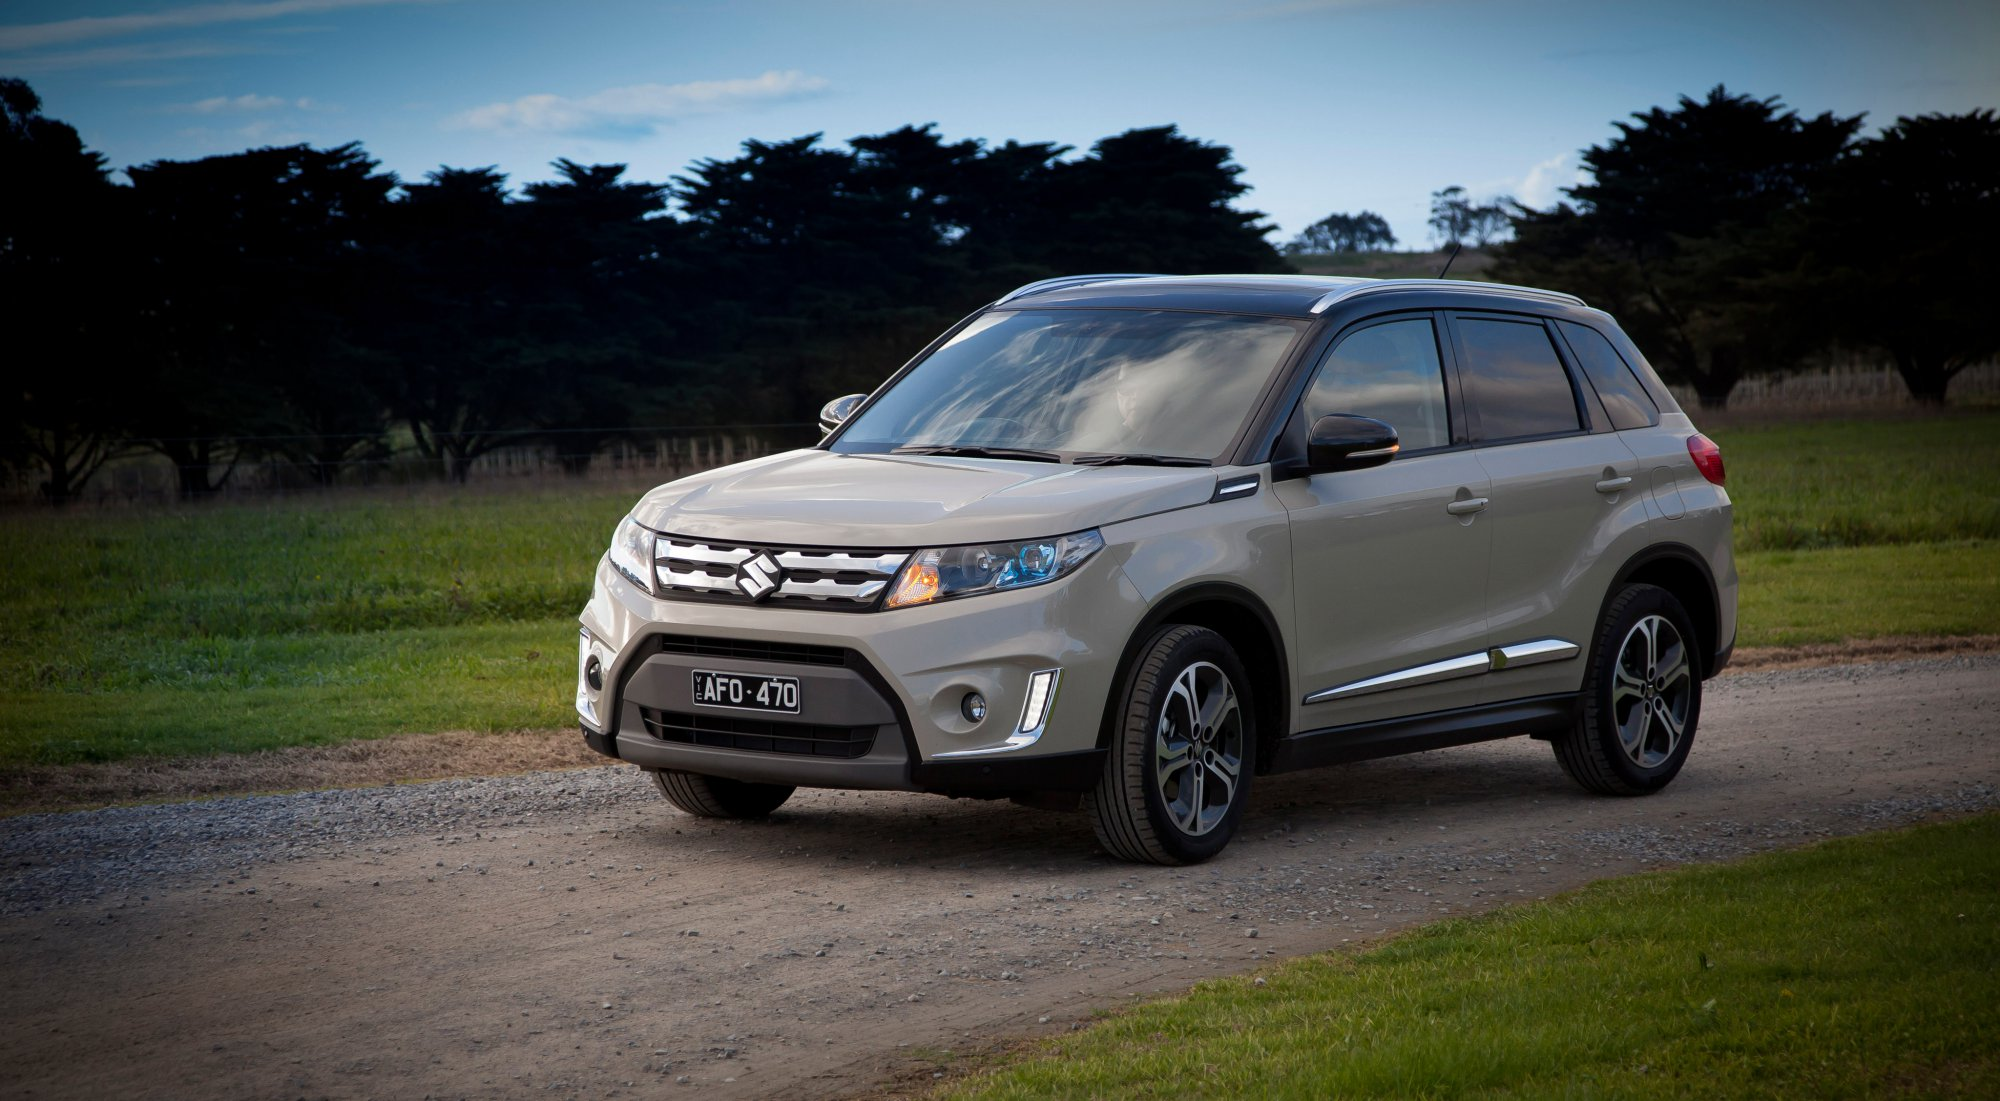 Review - 2017 Suzuki Vitara - Review